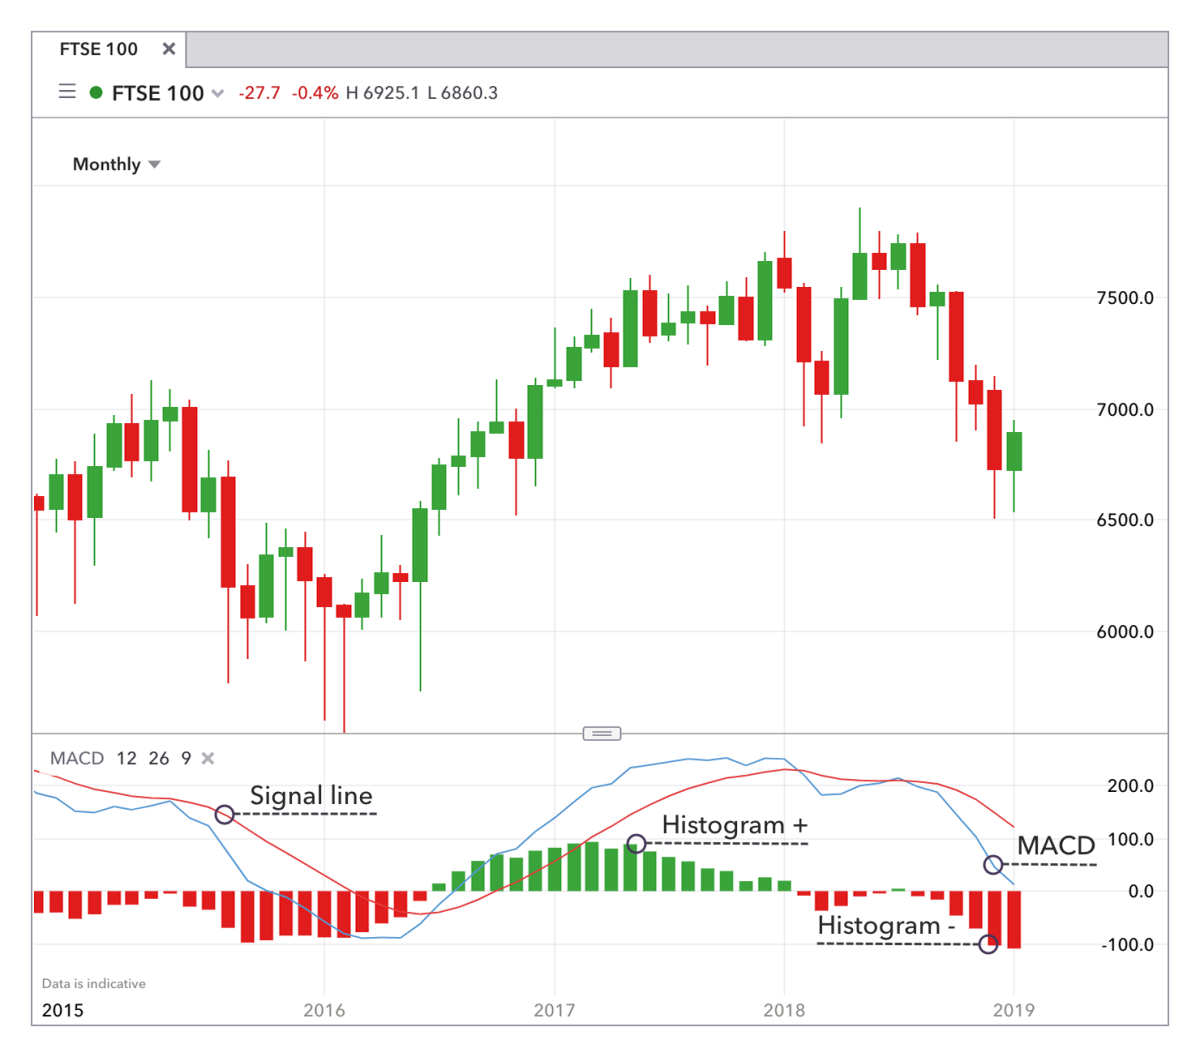 When the signal line diverges from the average in a downward trend, the price will likely dip while when it diverges in an upward trend, prices will go up.